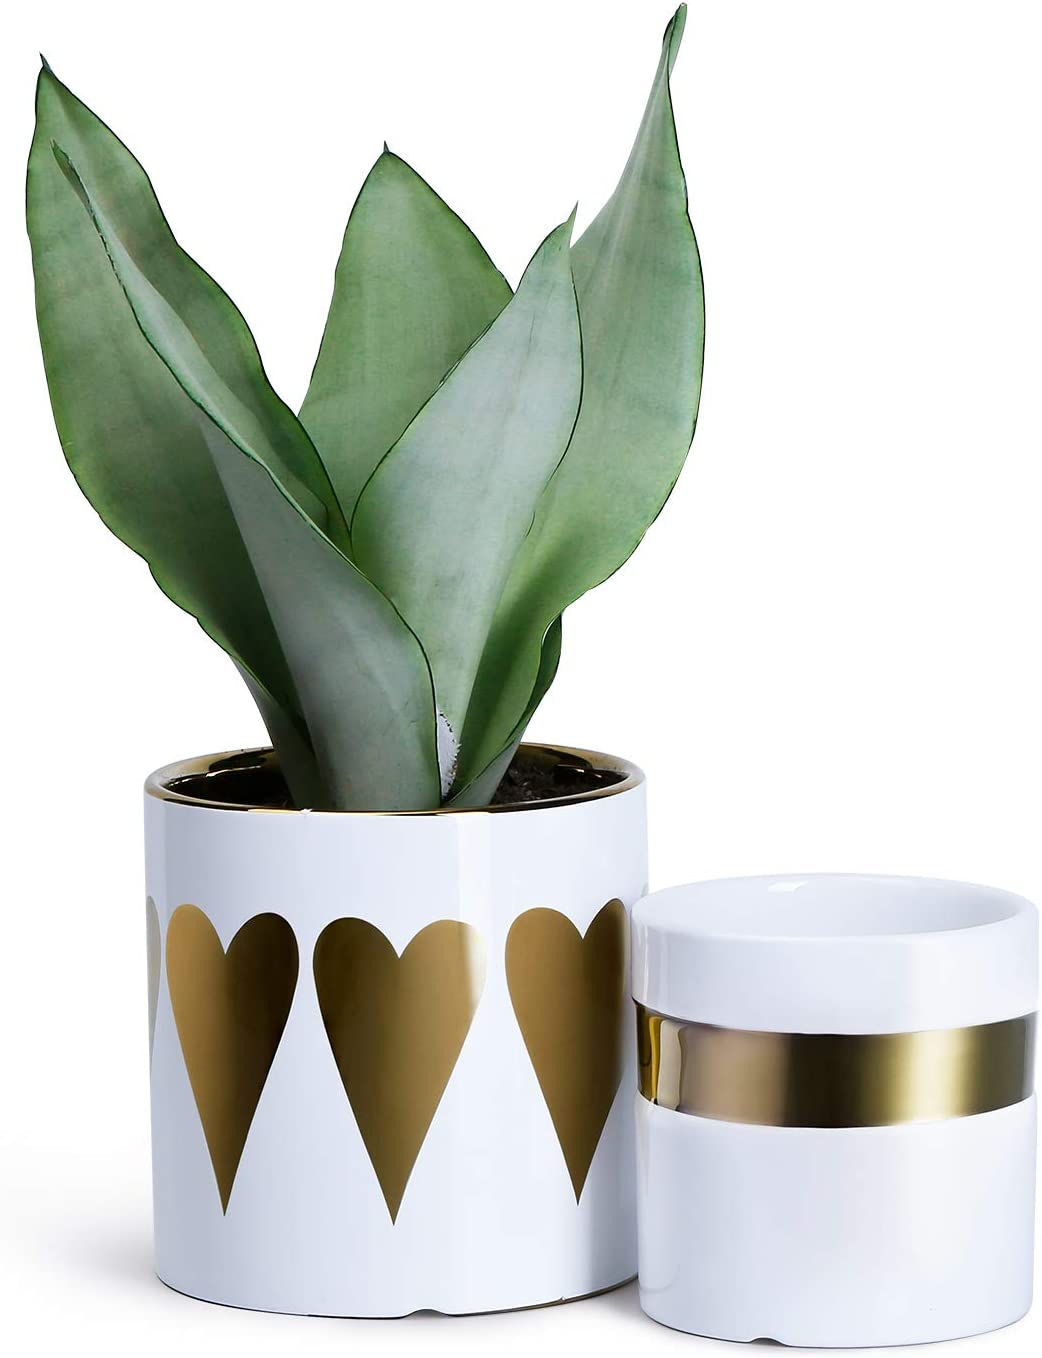 Greenaholics Plant Pots – 4.7 4.3 Inch Electroplated Ceramic Planters with Pattern Decor, for Succulents, Small Plants, Set of 2, Gold White